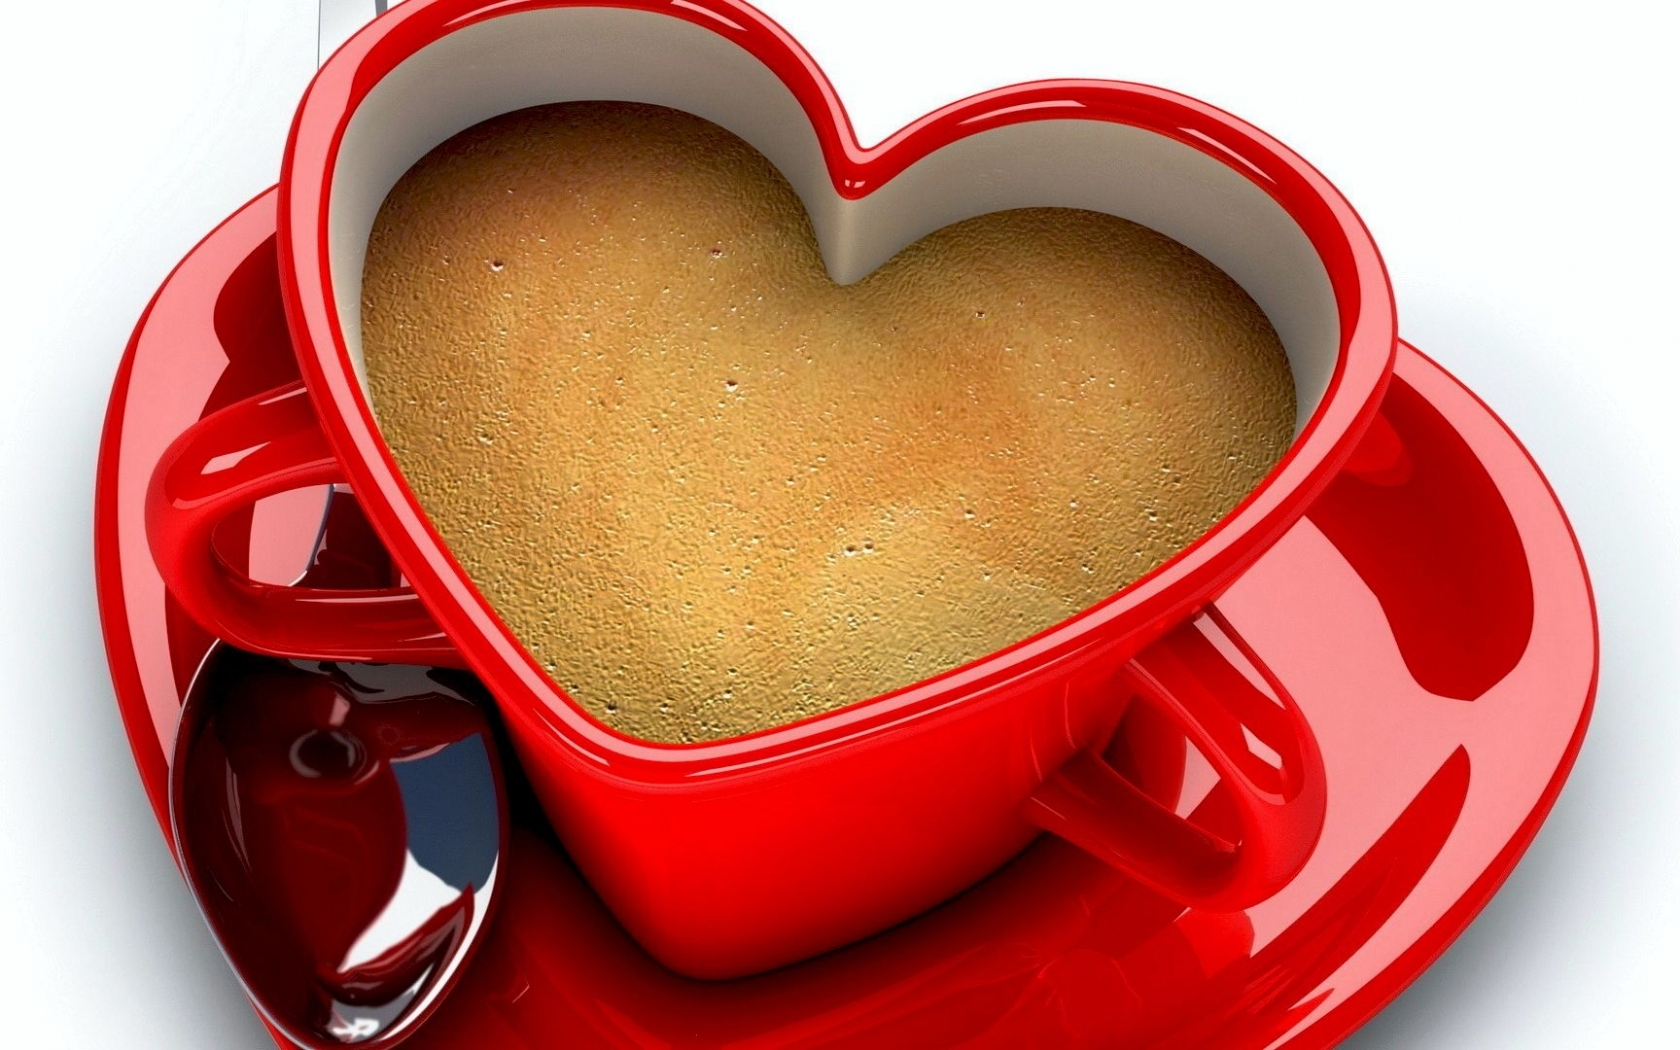 41897 download wallpaper Hearts, Objects, Coffee screensavers and pictures for free